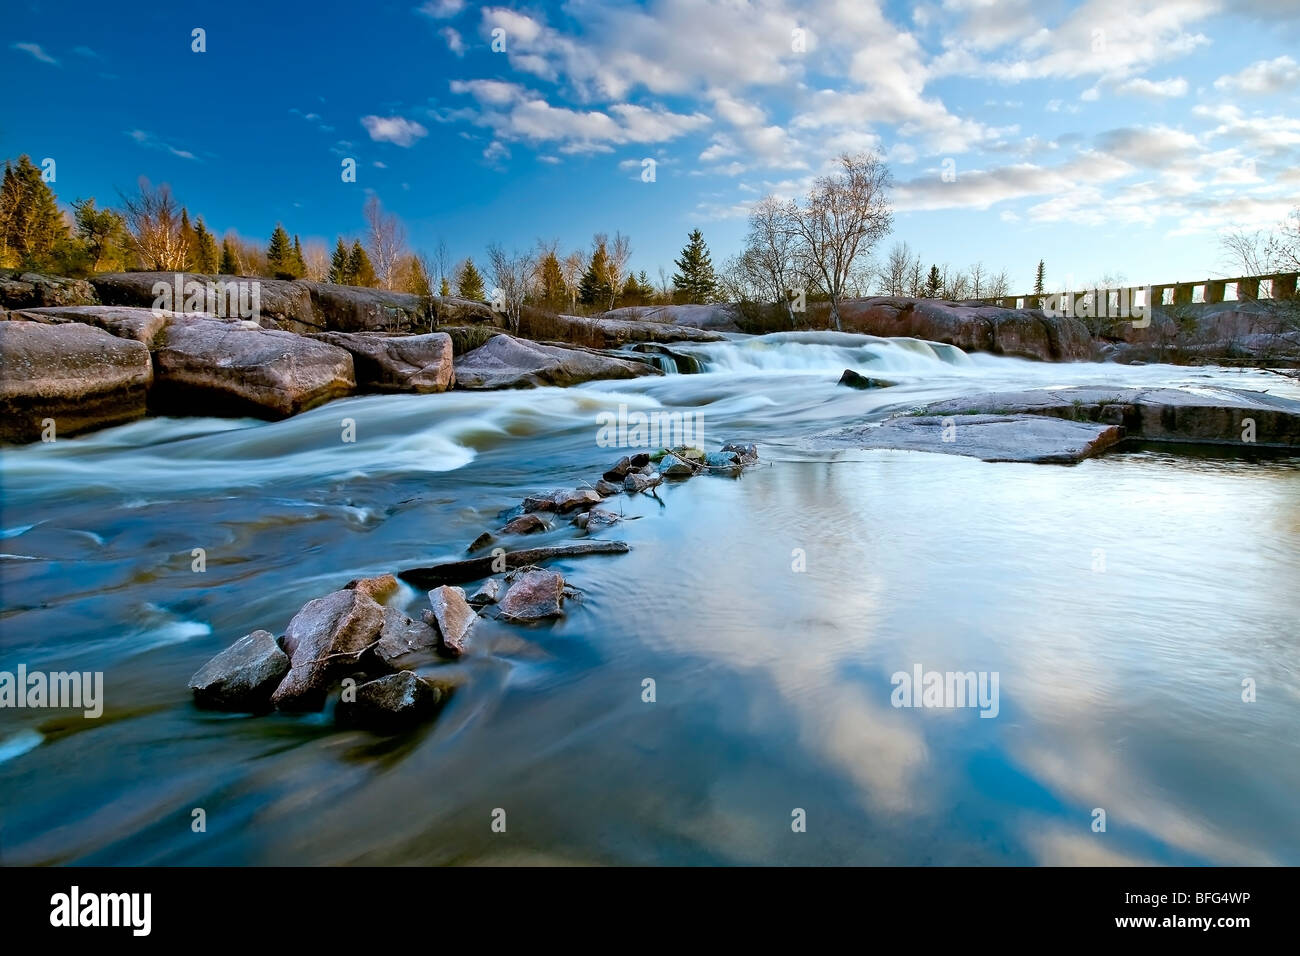 Water rapids on Winnipeg River site of Old Pinawa Dam. dam was Manitoba's first hydro electric dam but was closed - Stock Image